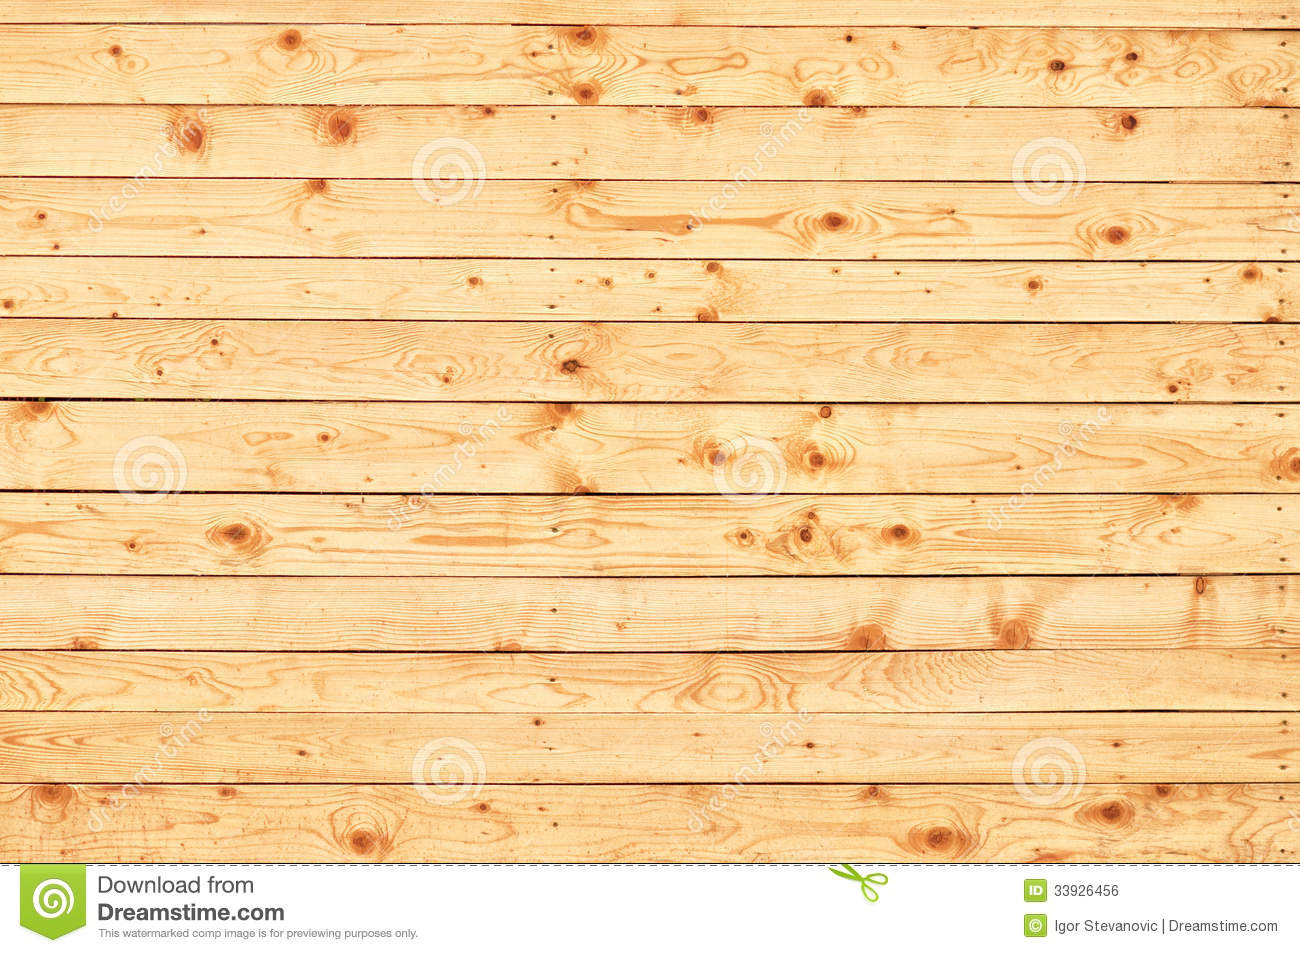 Wood texture wooden plank - Wood Plank Texture Background Royalty Free Stock Image